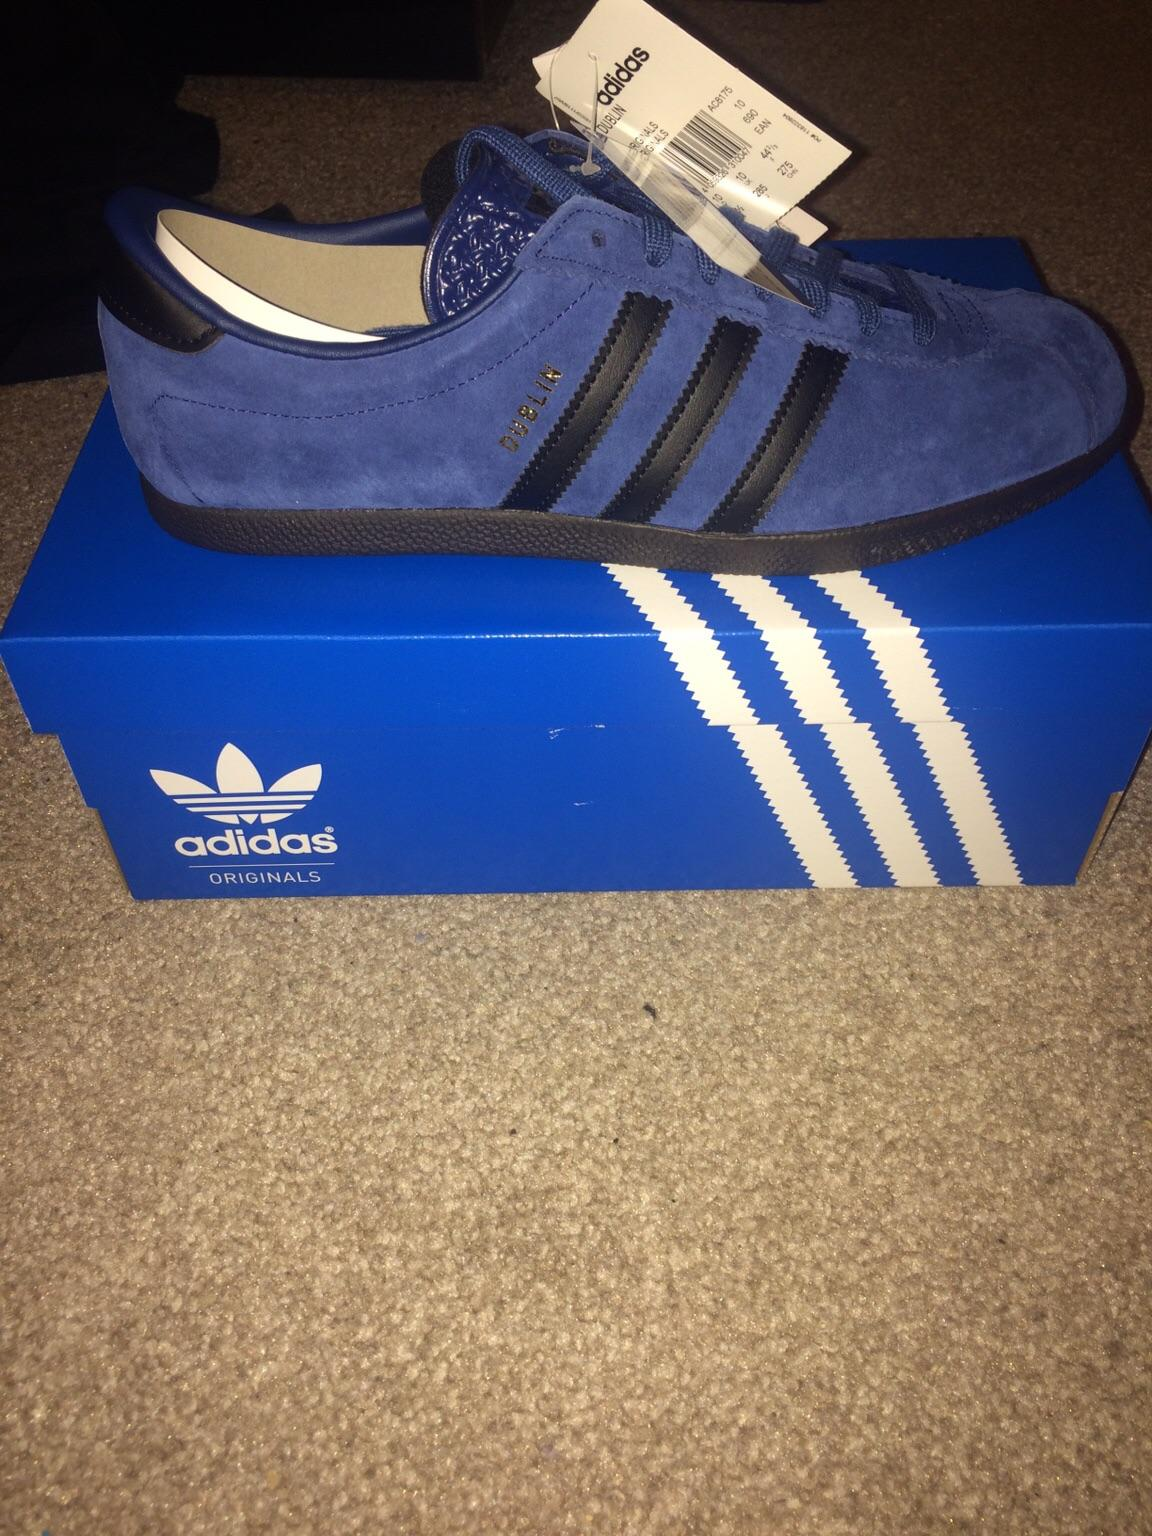 distorsionar Cerebro sistema  Adidas Dublin Taiwan in TS20 Norton for £155.00 for sale | Shpock